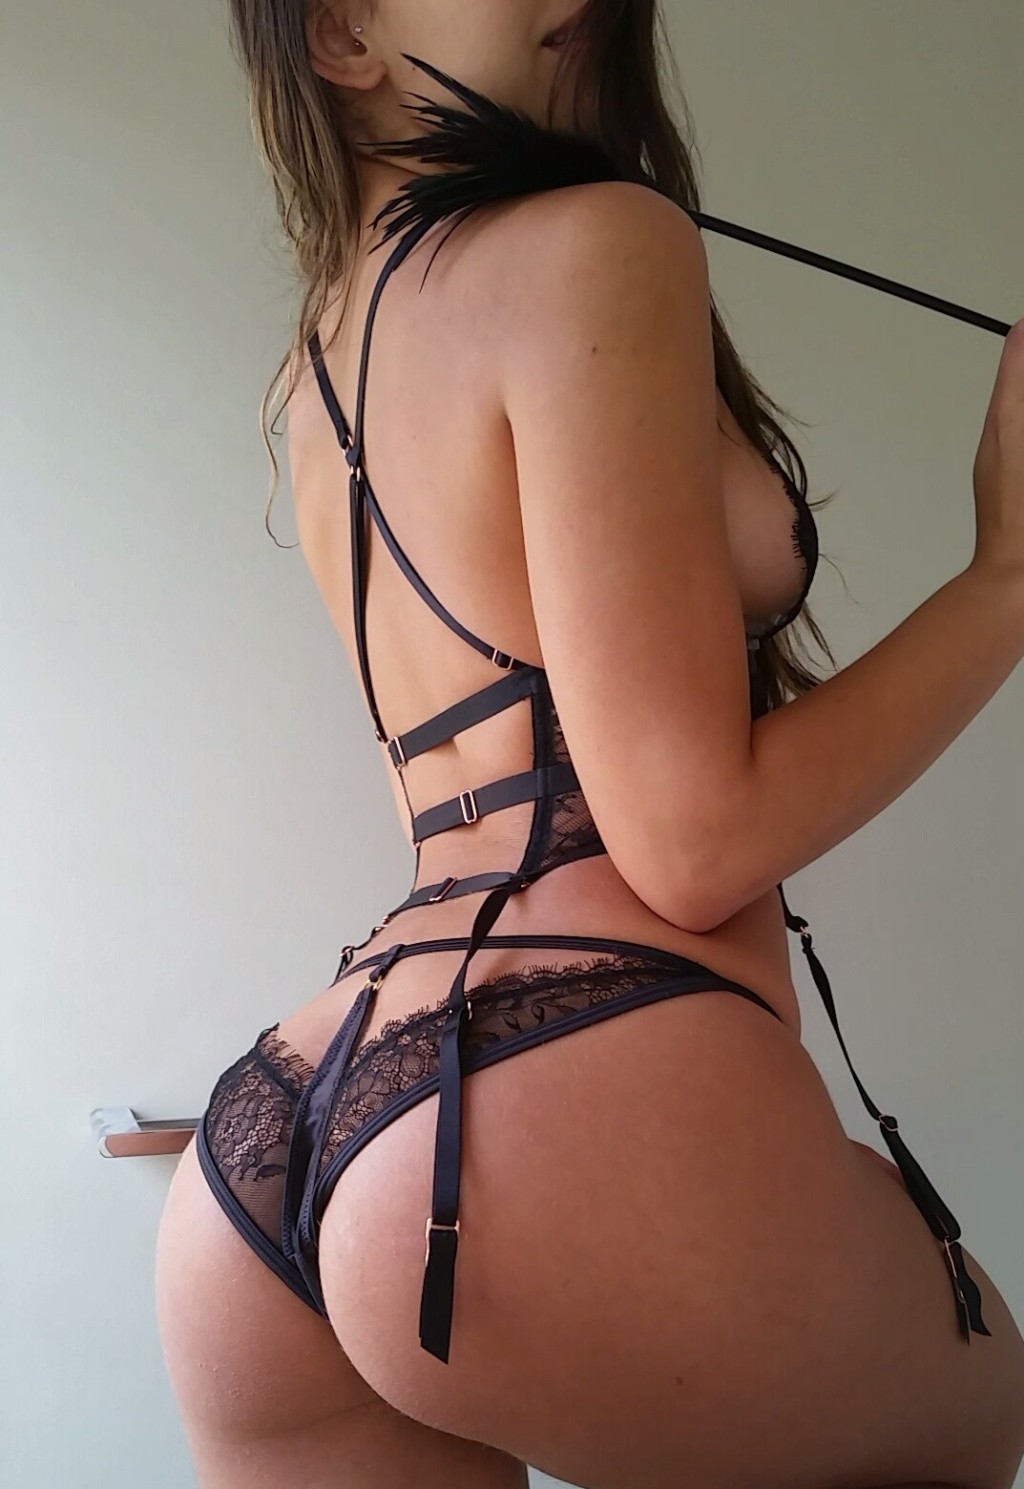 Selfie Pics from Avani Grace - Private Escort Melbourne